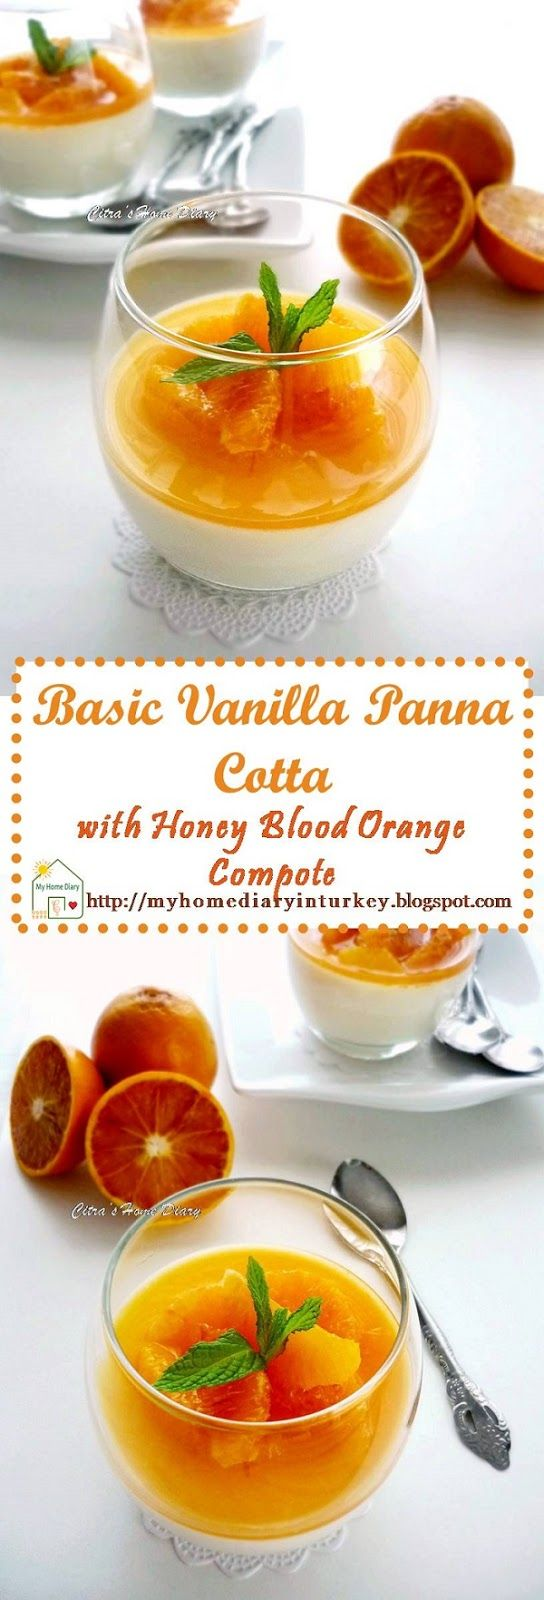 Basic Vanilla Panna Cotta with Honey Blood Orange Compote. so refreshing and delish panna cotta with honey blood orange compote. #bloodorange #orangerecipe #pannacotta #dessert #pudding #orangecompote #spring